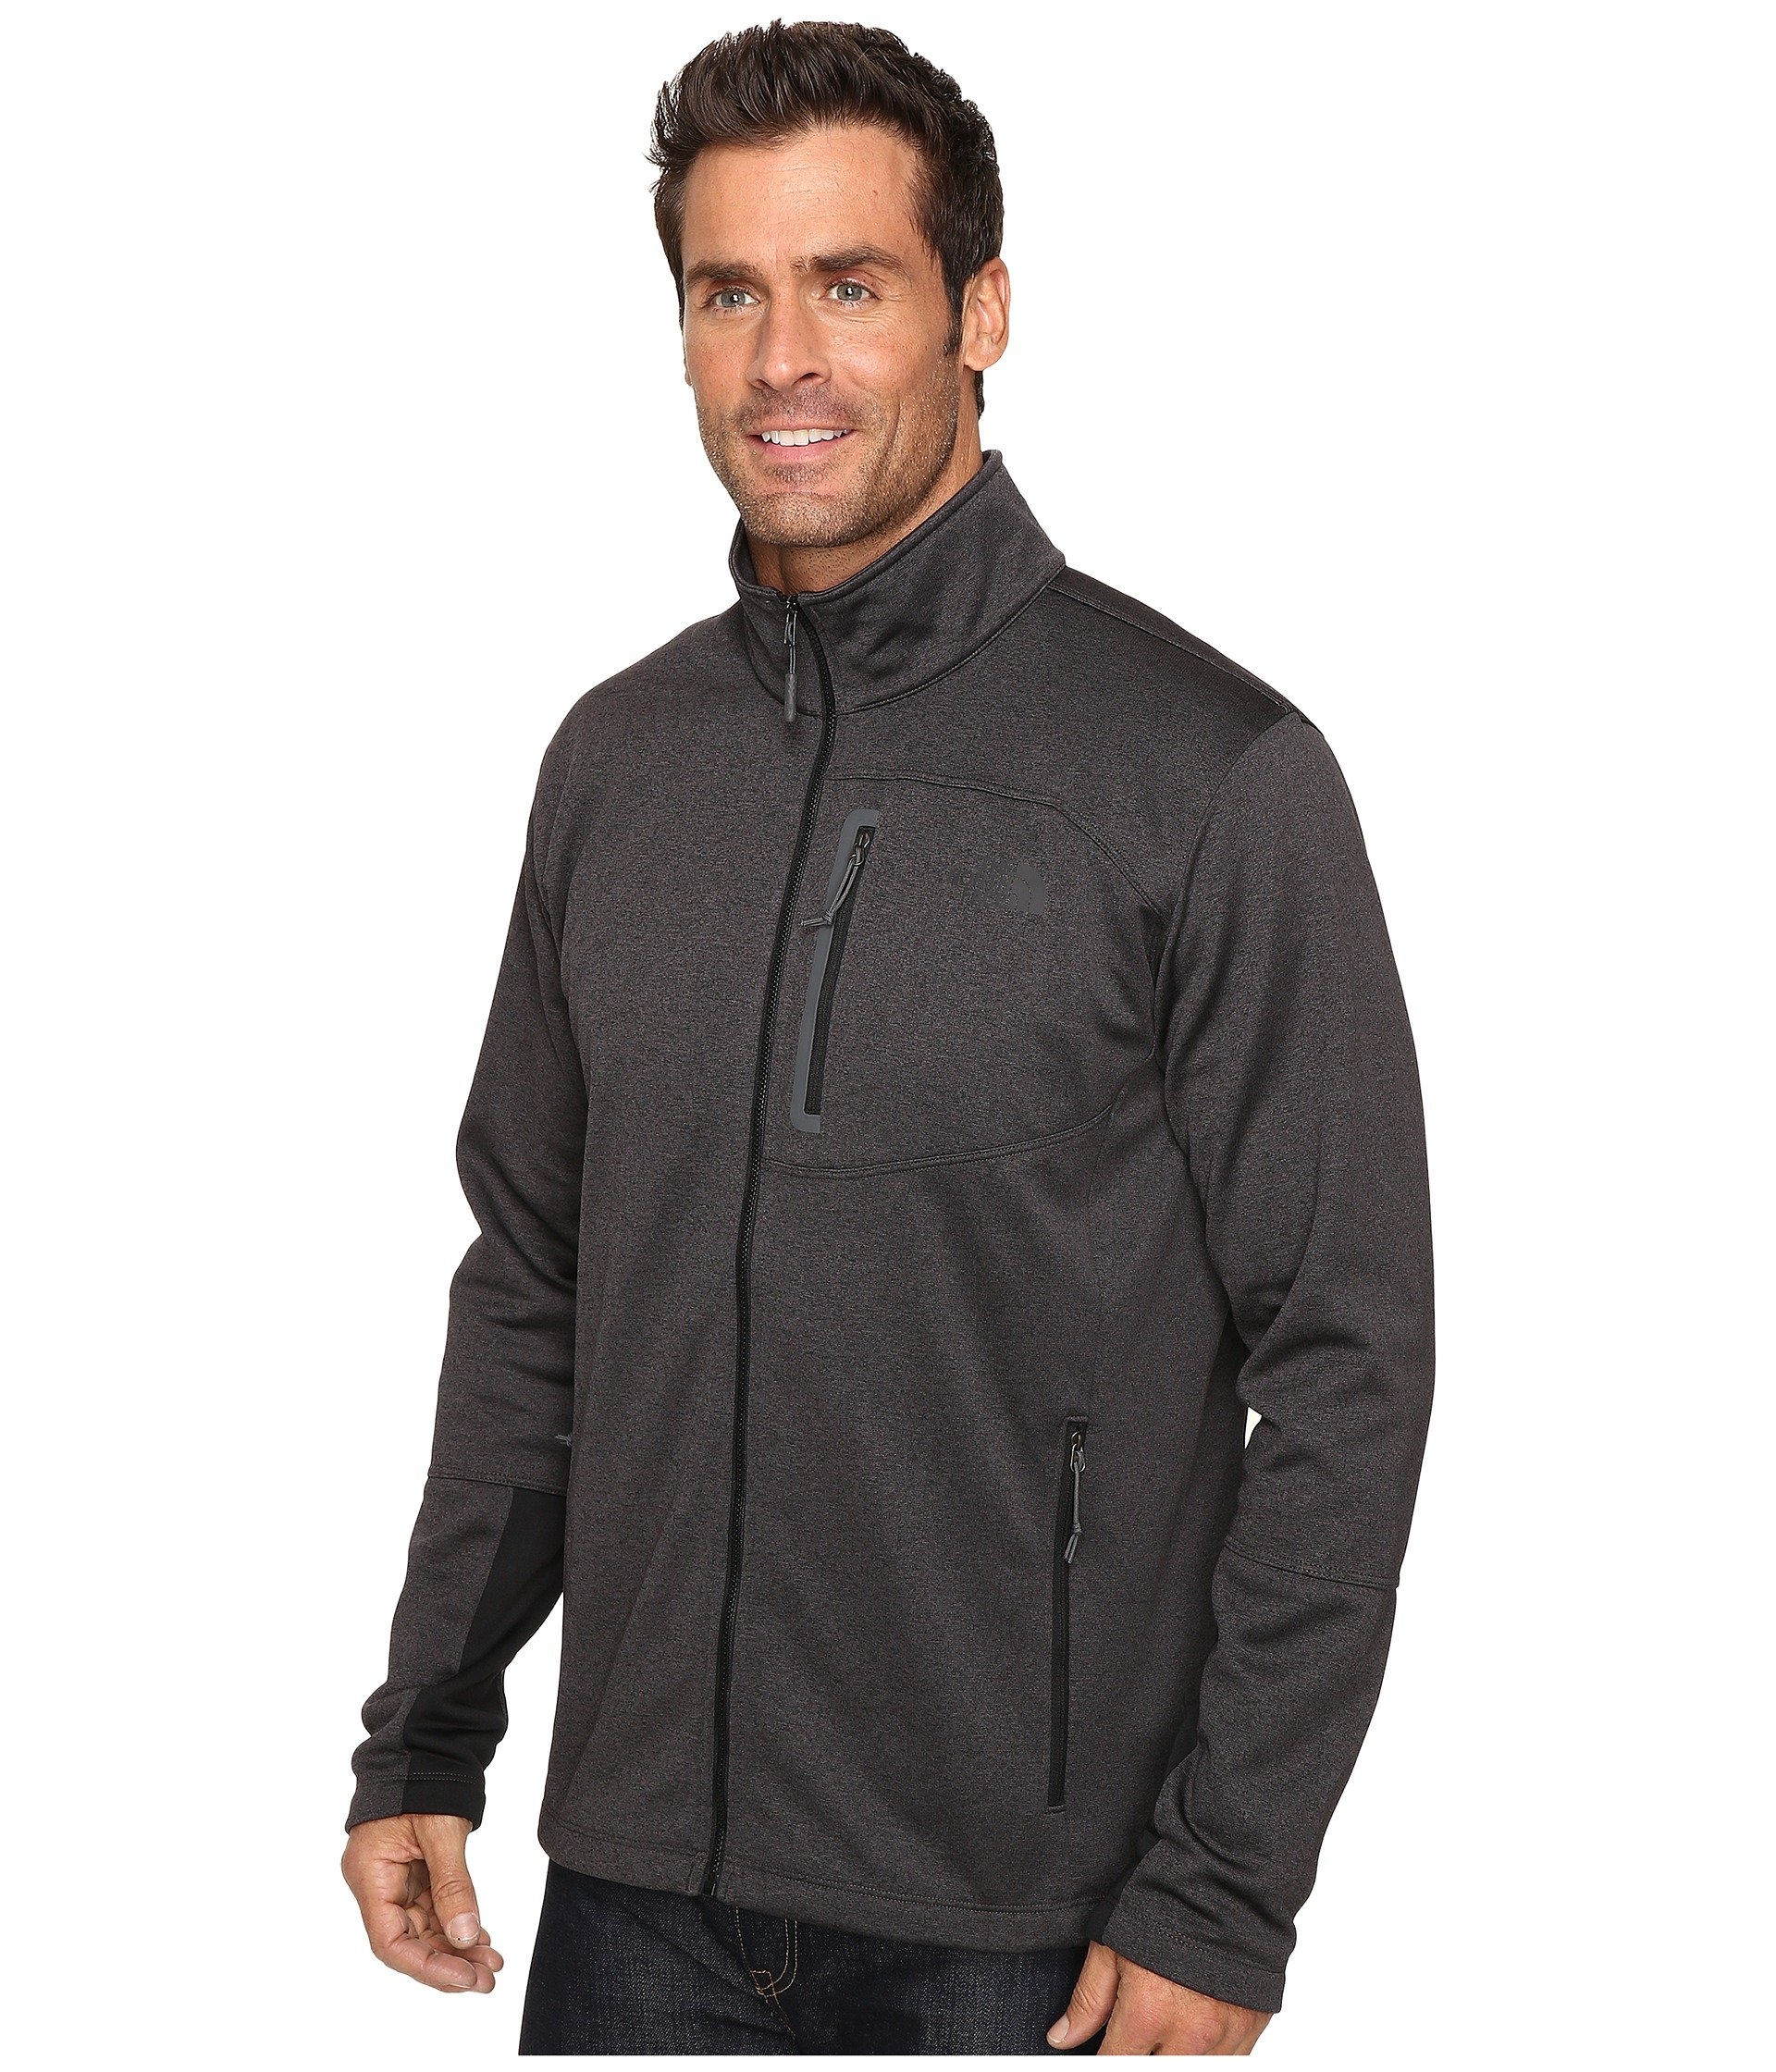 Zip Tnf The Full Dark Heather Face Canyonlands Grey North IwI7W1qcT